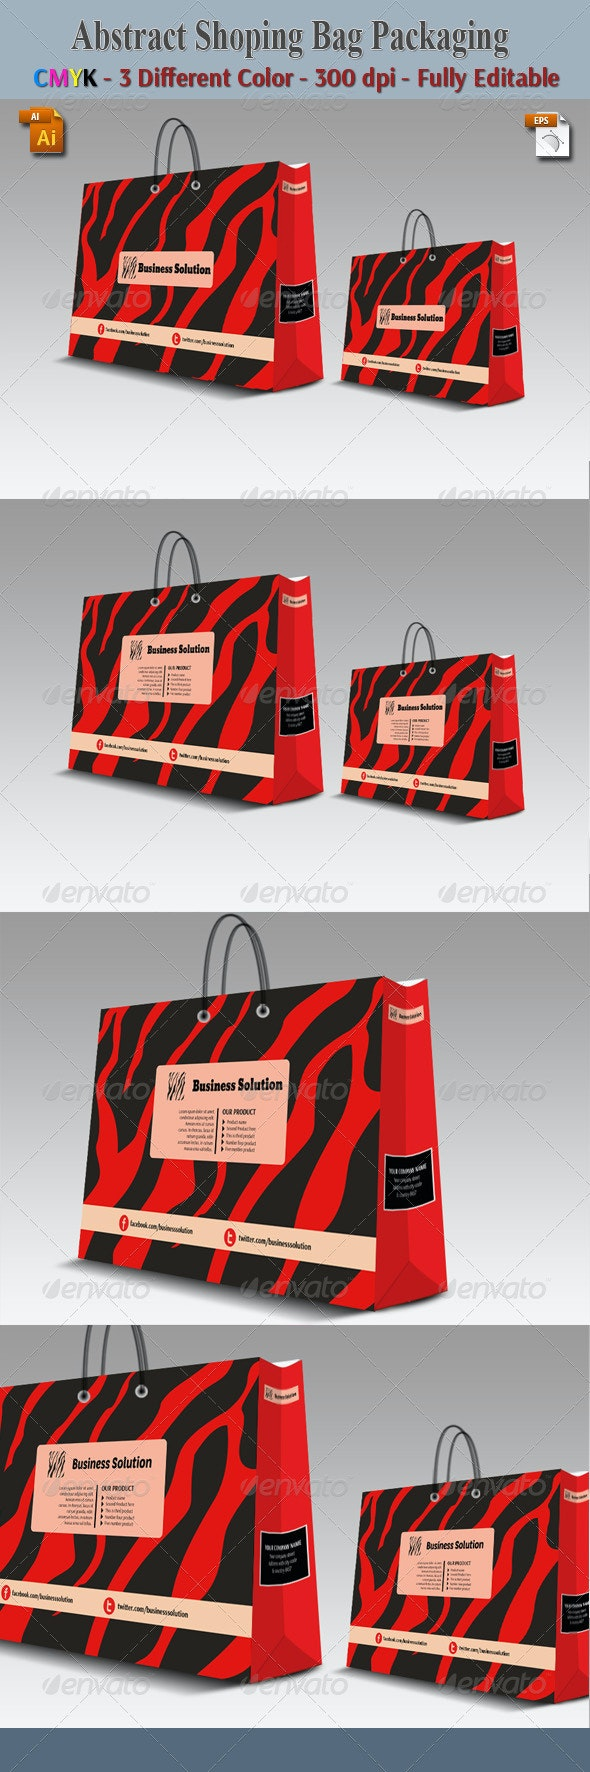 Abstract Shoping Bag Packaging